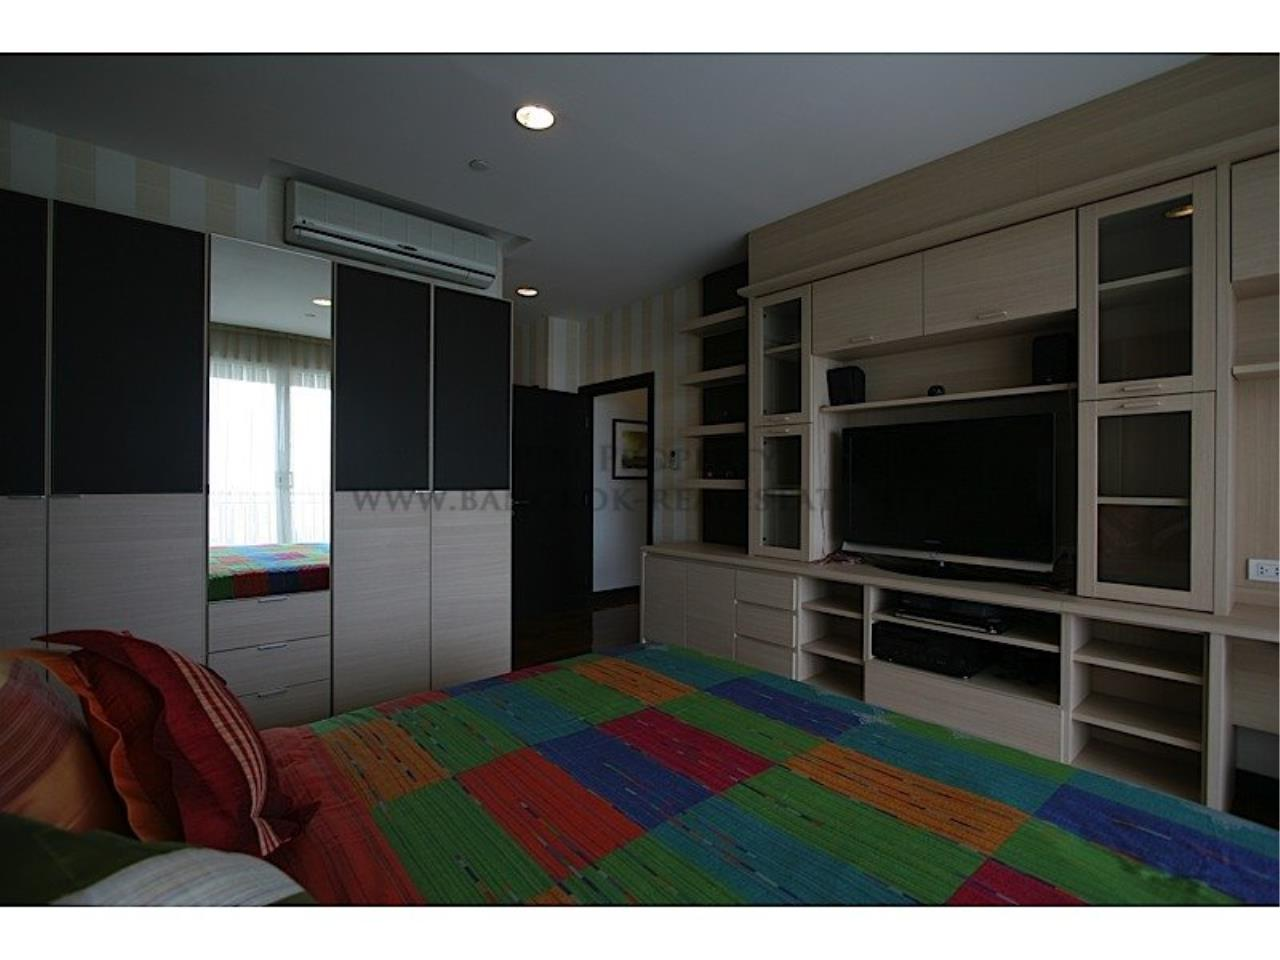 Piri Property Agency's Wilshire Condo - Exclusive and Spacious 3 Bedrooms - More than 200 SQM 3